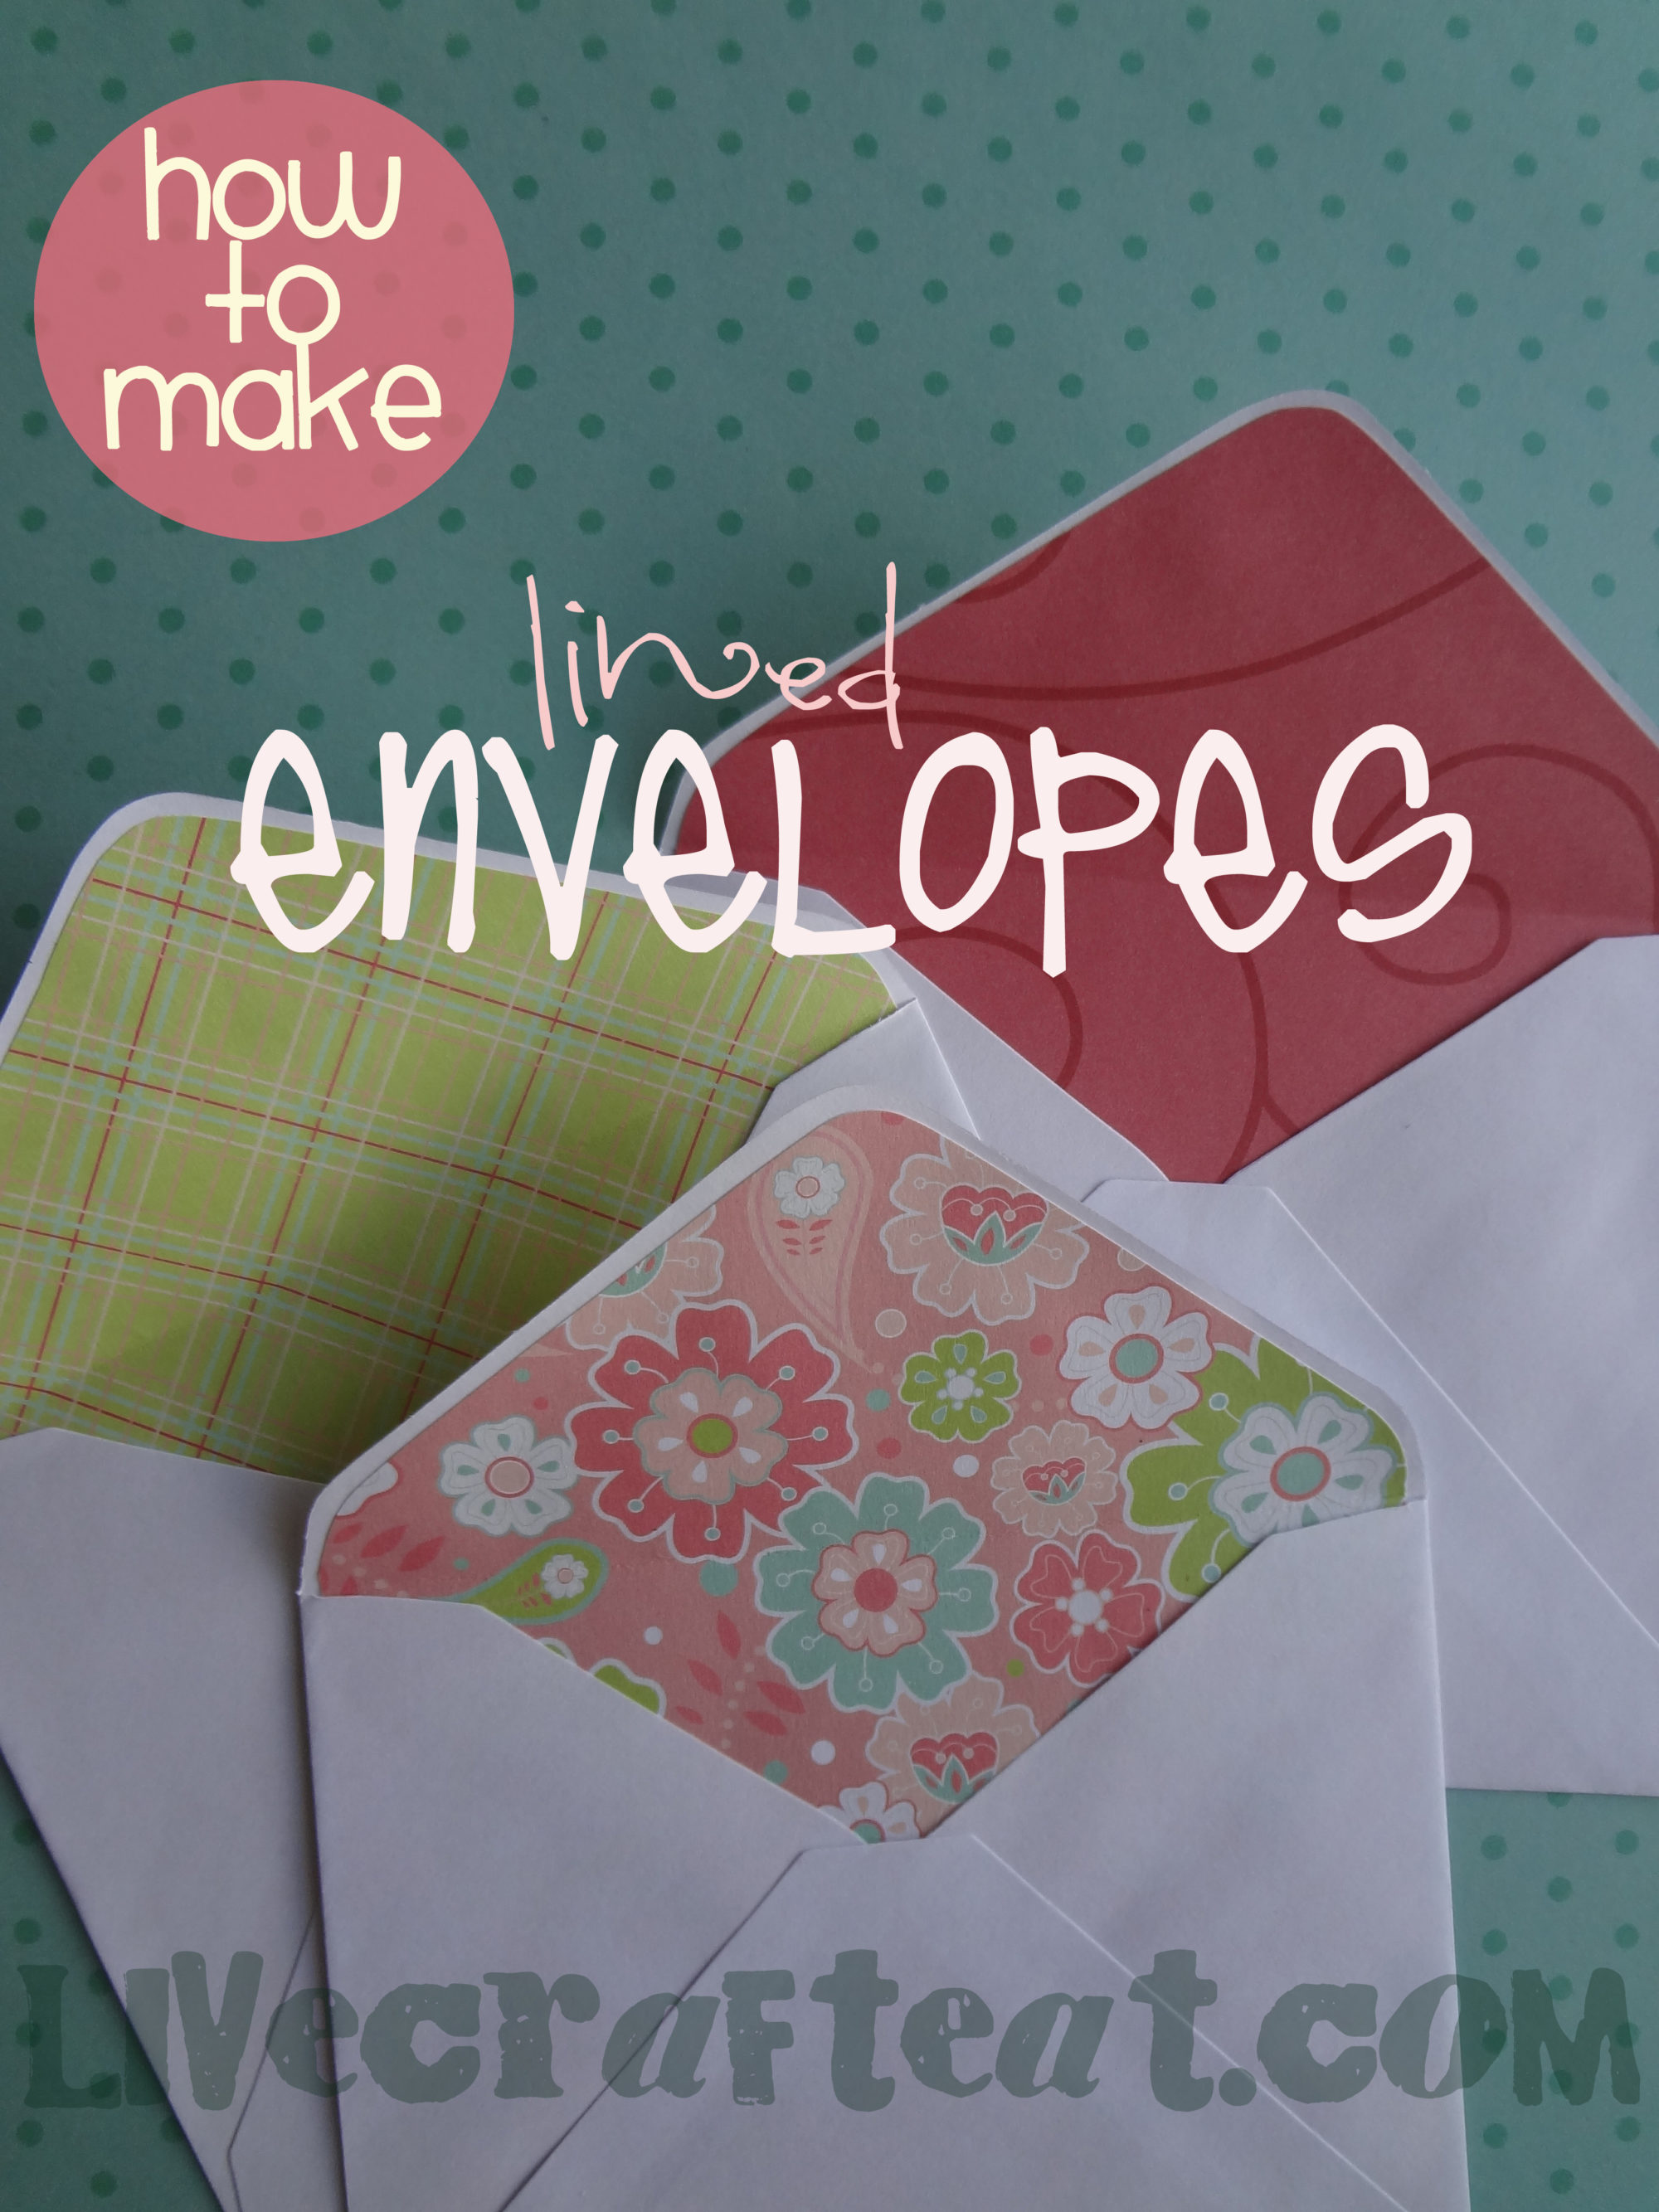 how to make paper envolops